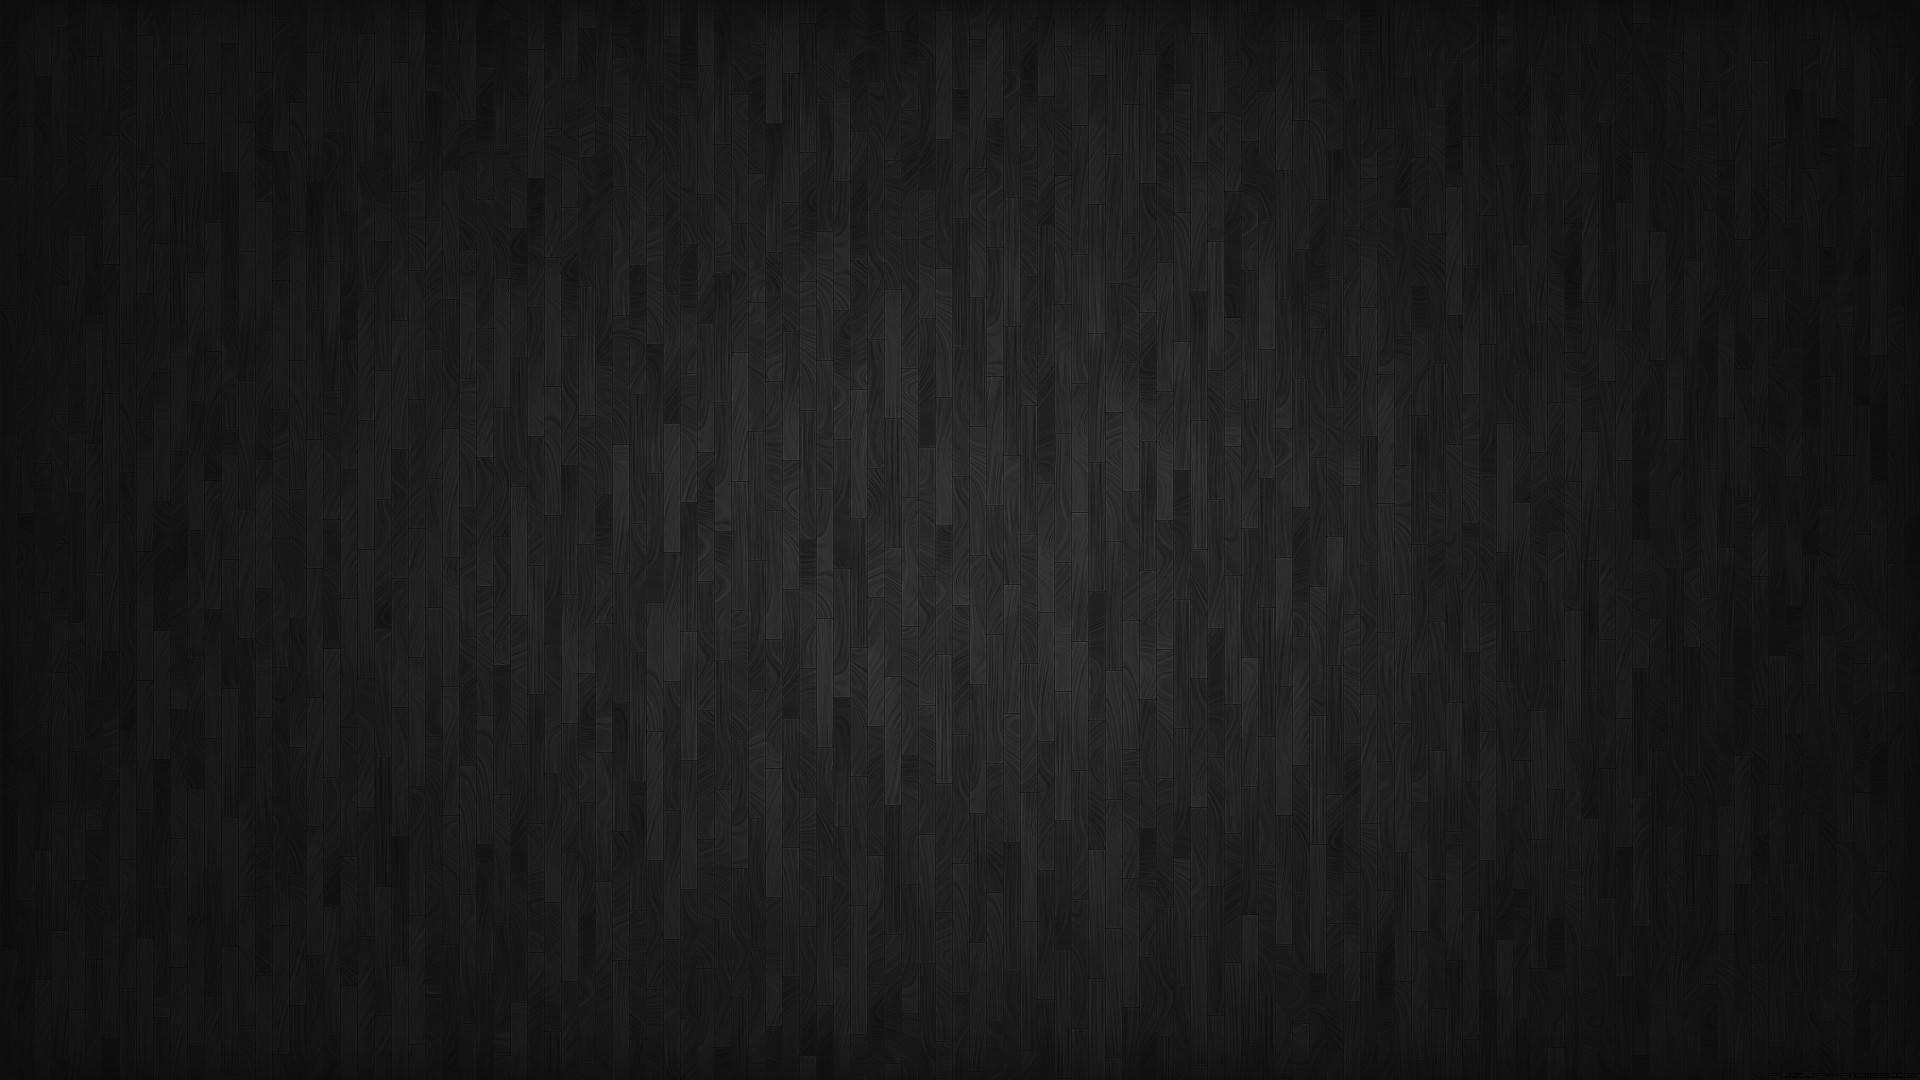 floor minimalistic dark Wood HD Wallpaper